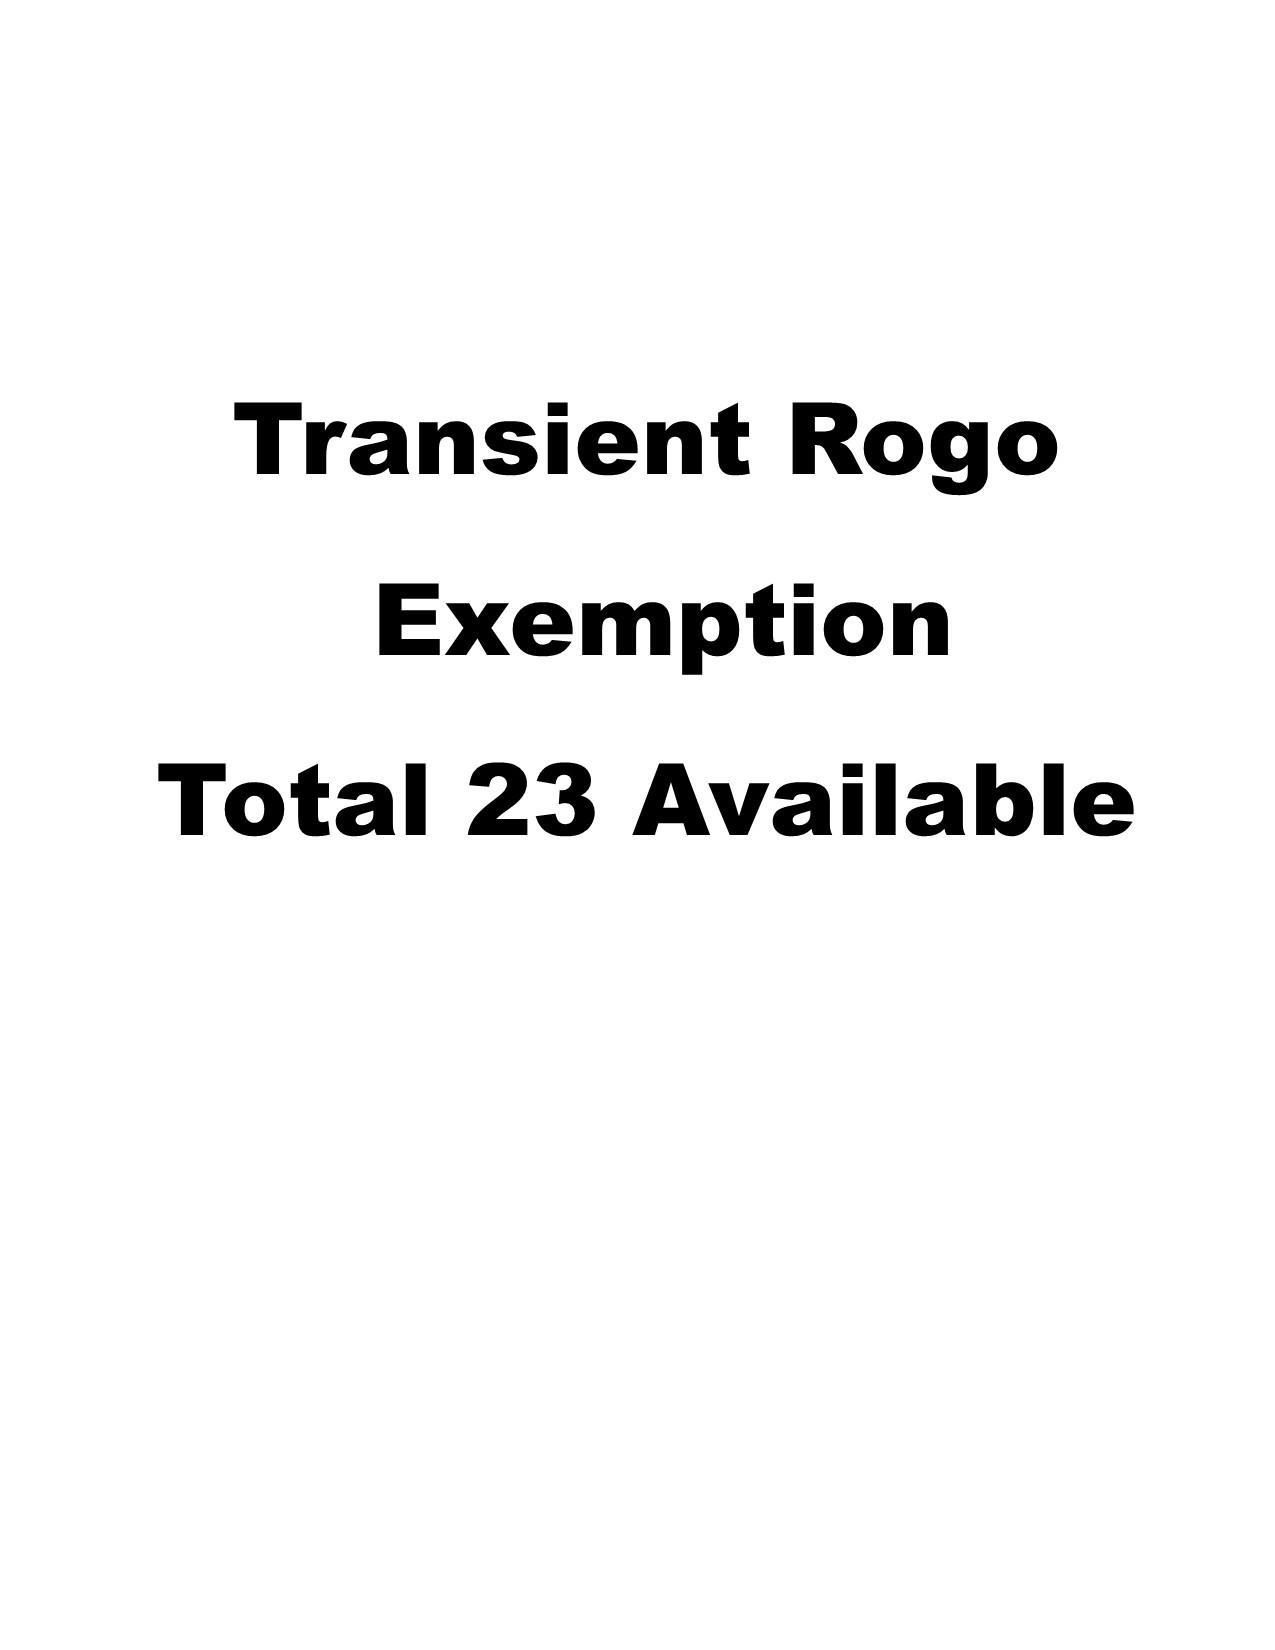 23 Transient Rogo Excemptions - Photo 1